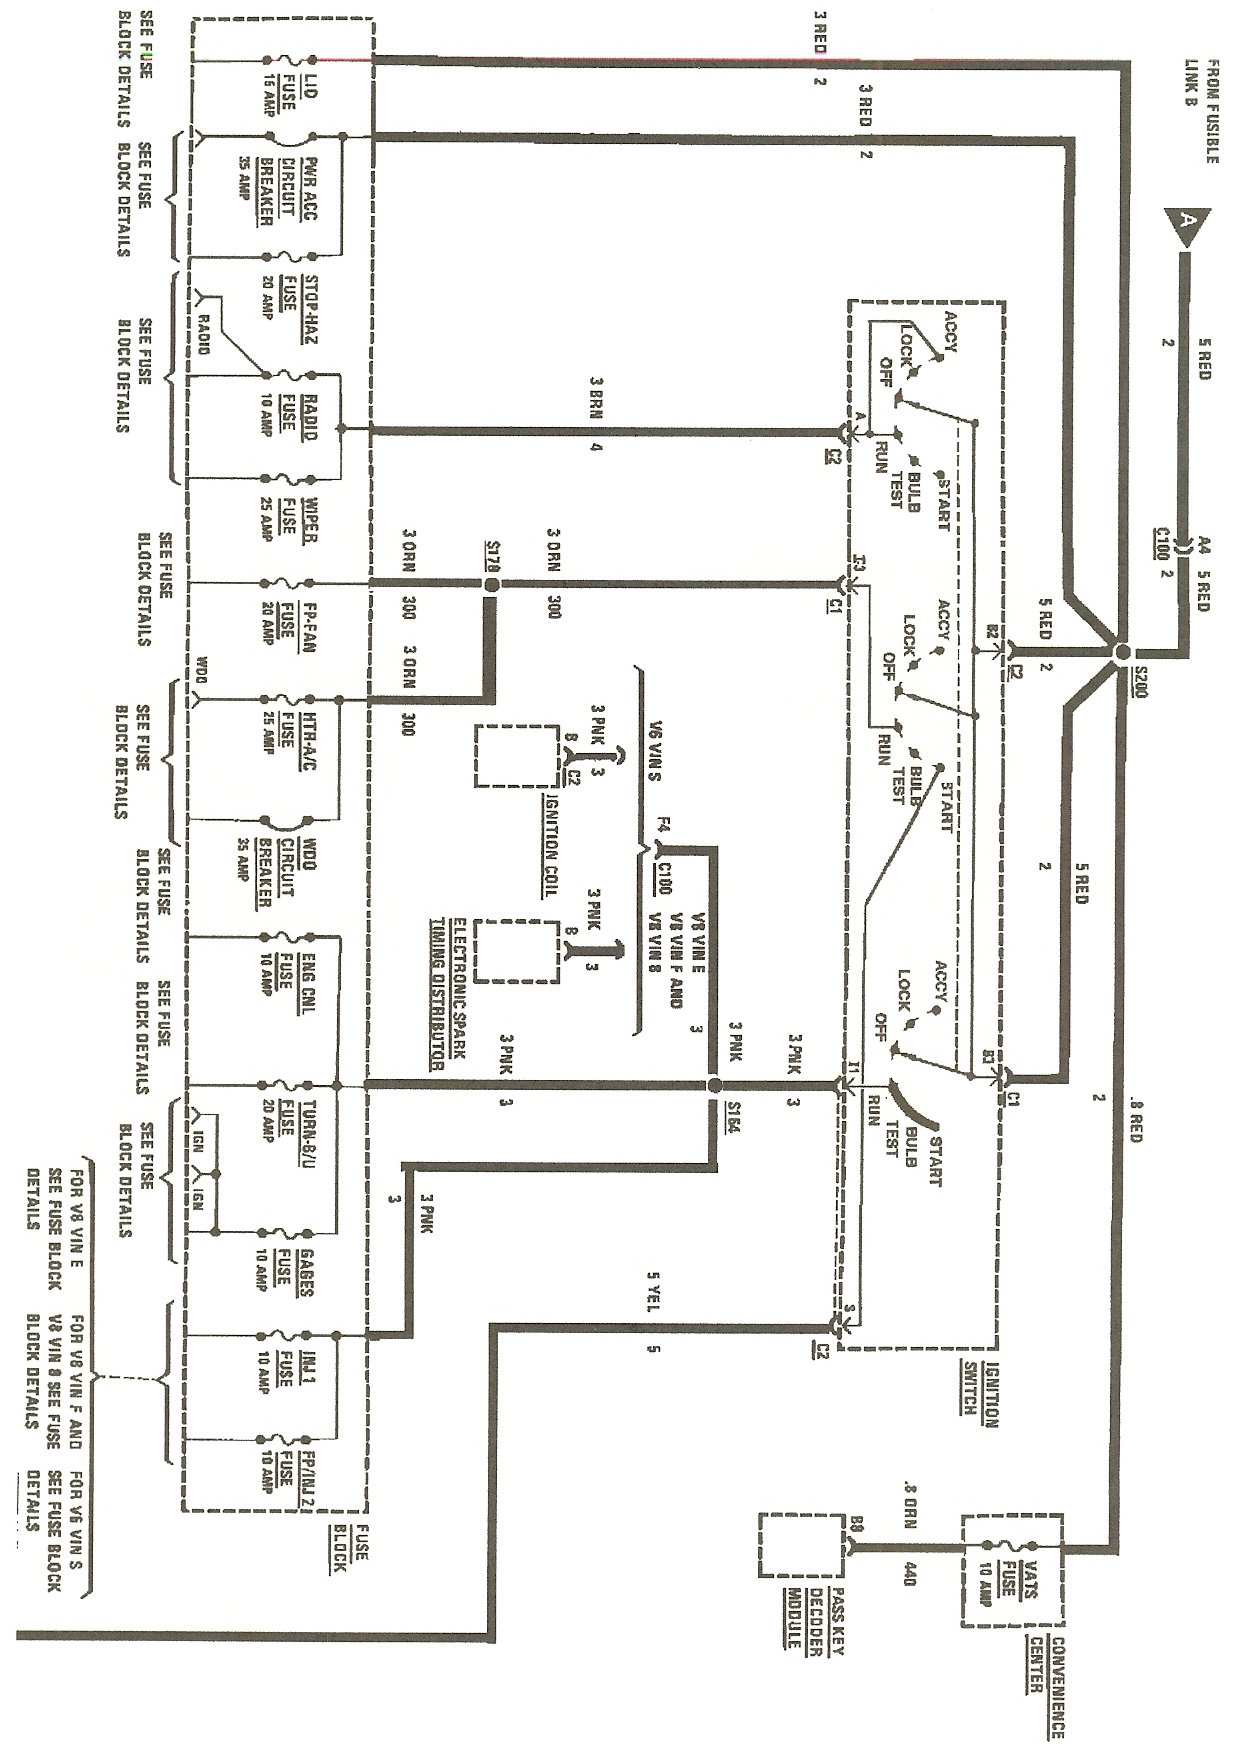 2011 01 08_012719_ignition_switch wiring diagram for gm steering column the 1947 present 1970 gm steering column wiring diagram at n-0.co